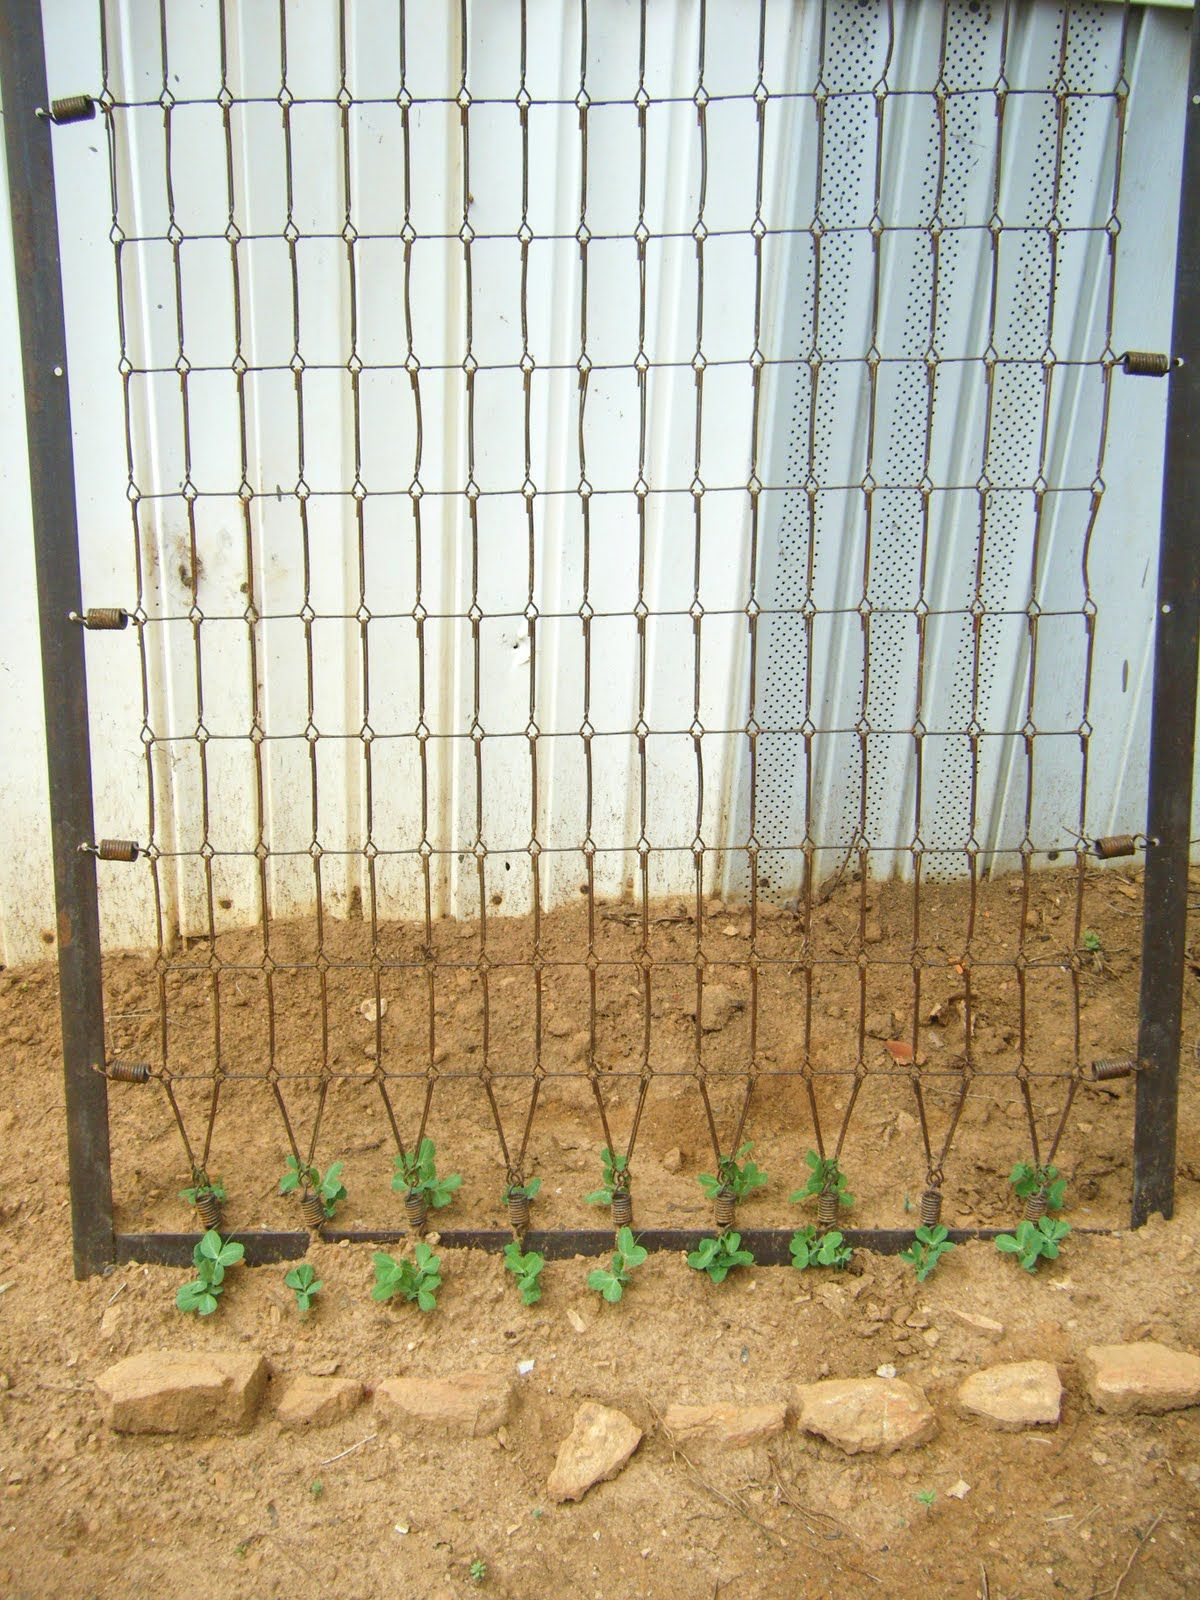 Bed Springs Here Is A Great Way To Reuse An Old Bed Spring Bed Springs Are